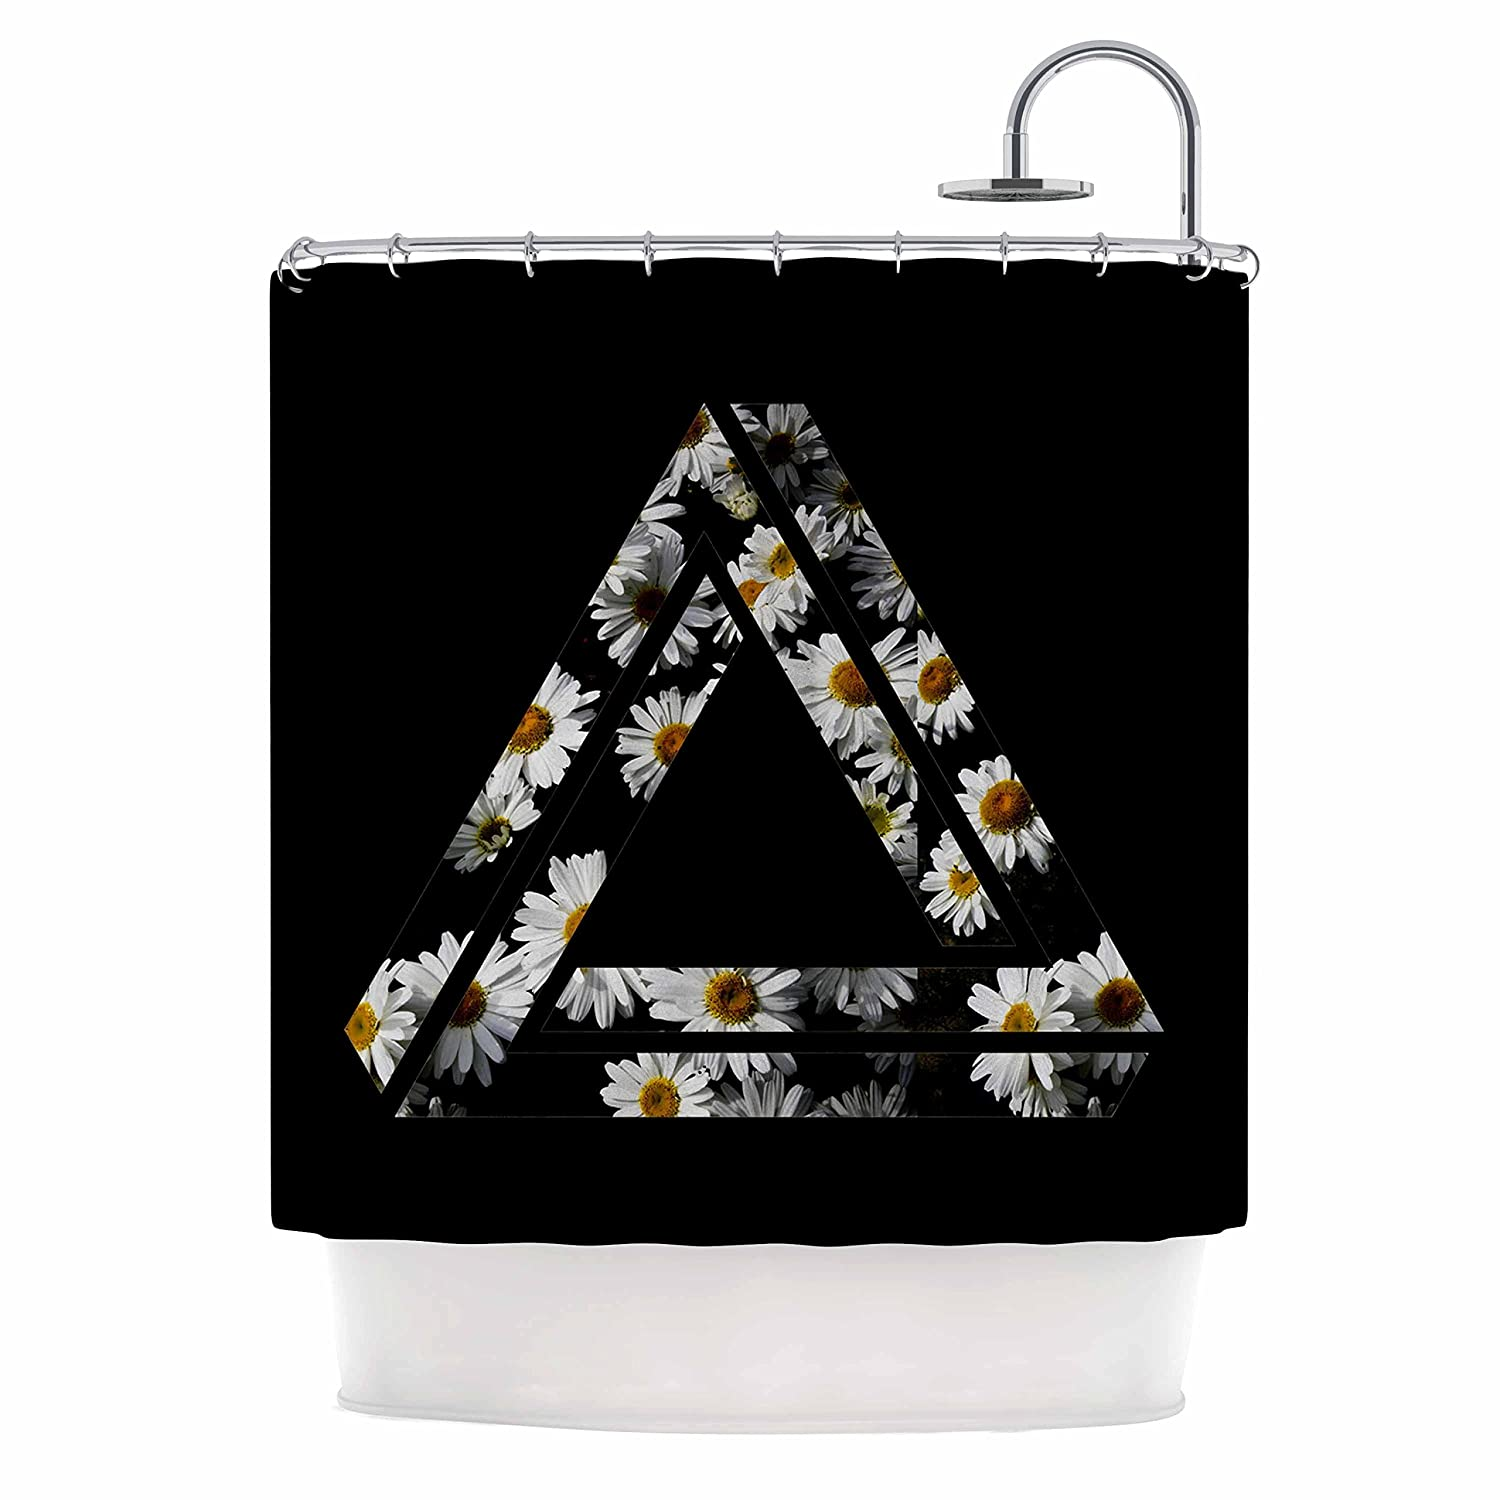 Kess InHouse Alias Impossible Daisy Chain Black Yellow Shower Curtain, 69 by 70'